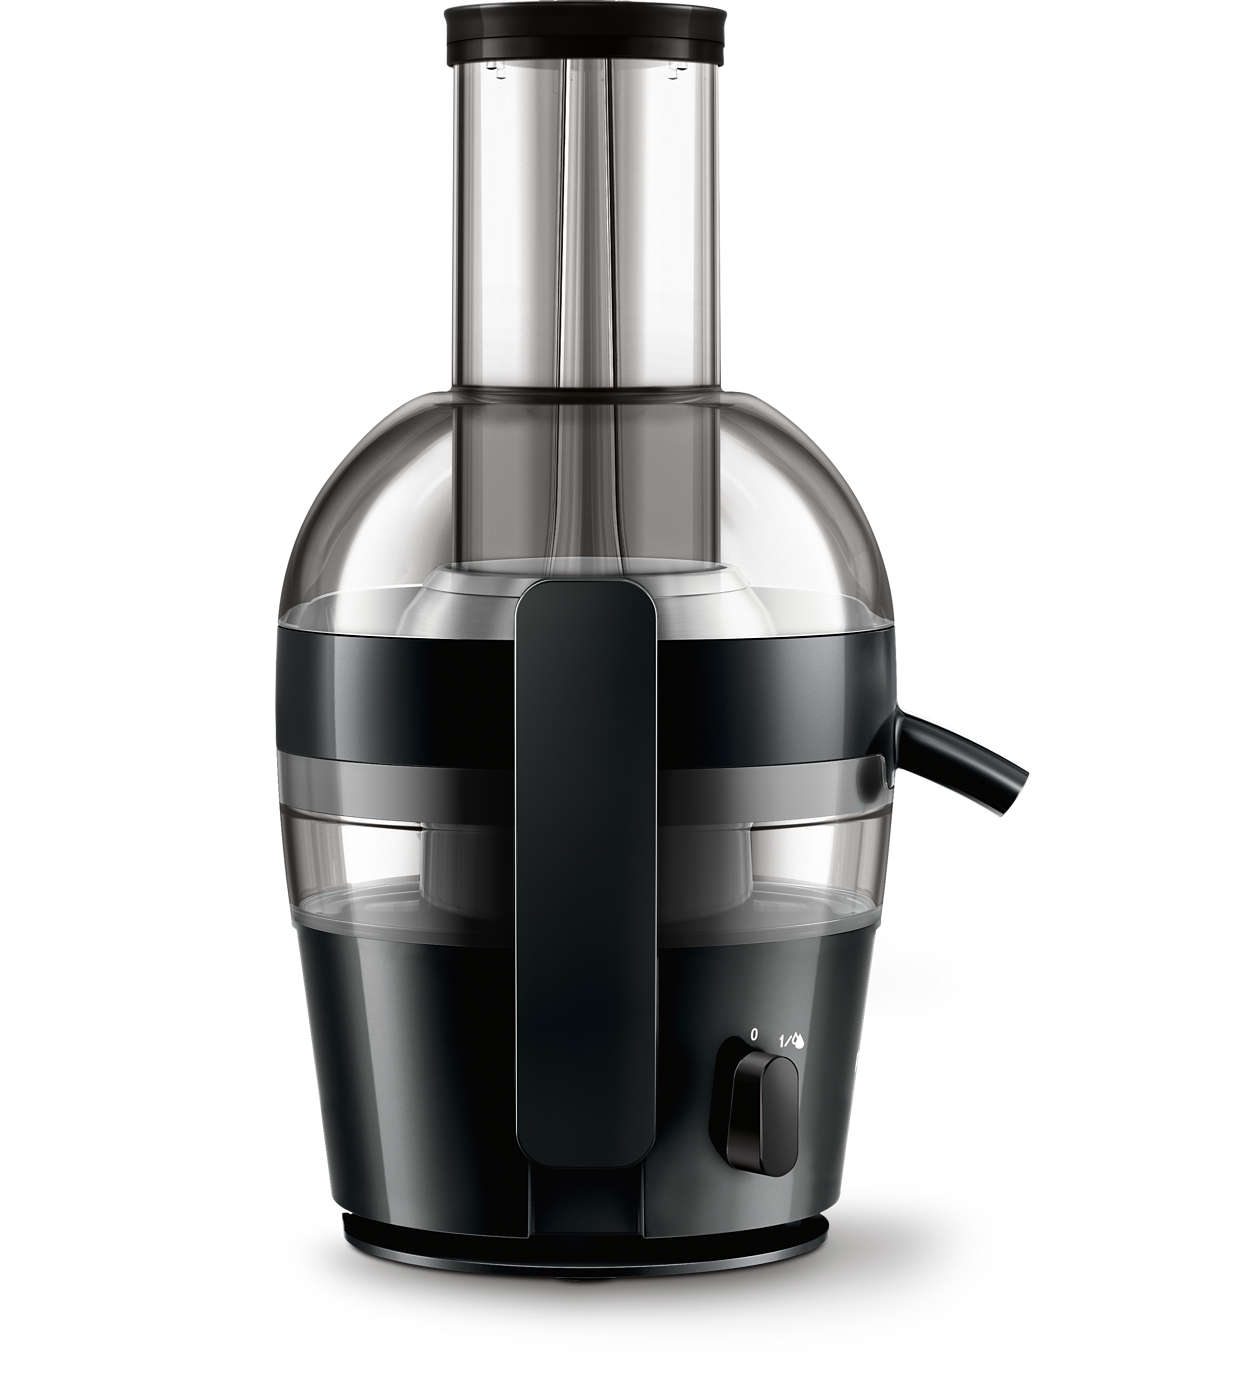 Philips Viva Collection Juicer NEW in